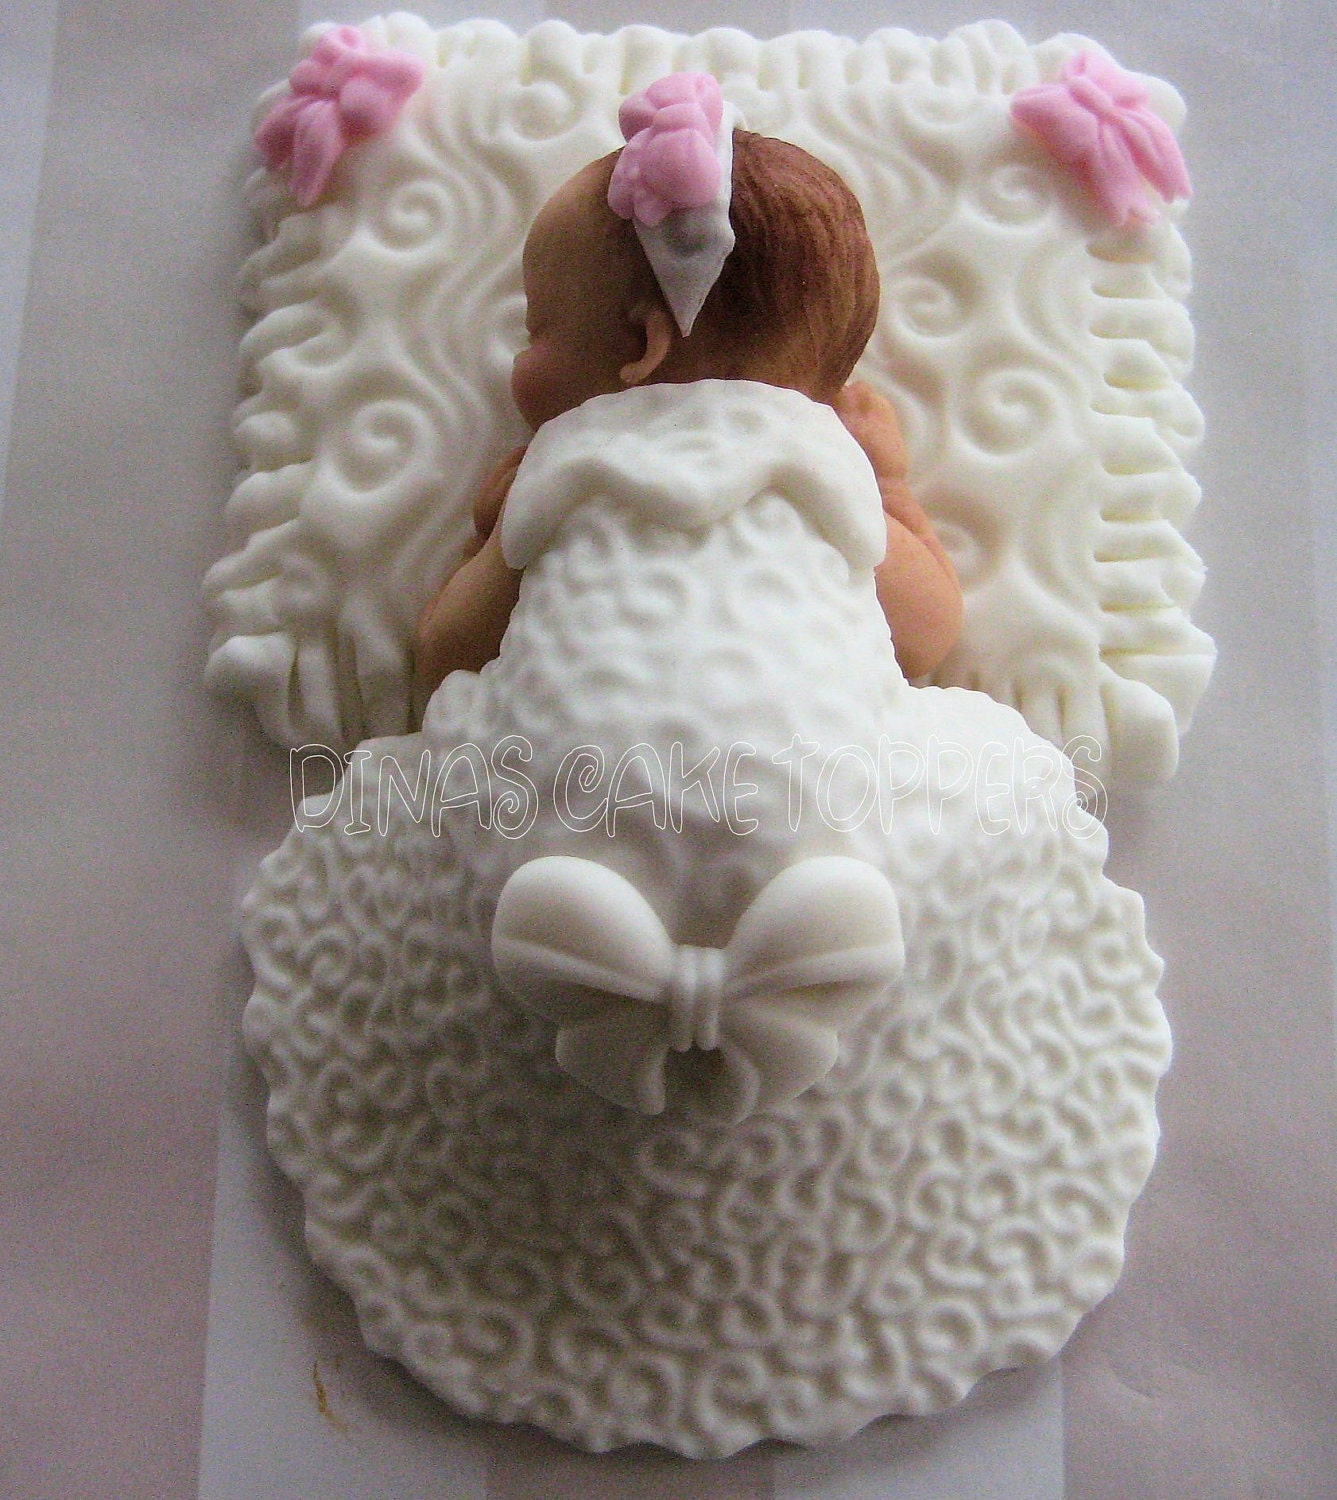 Fondant Cake For Baptism : CHRISTENING BAPTISM Baby Girl Cake Topper by DinasCakeToppers